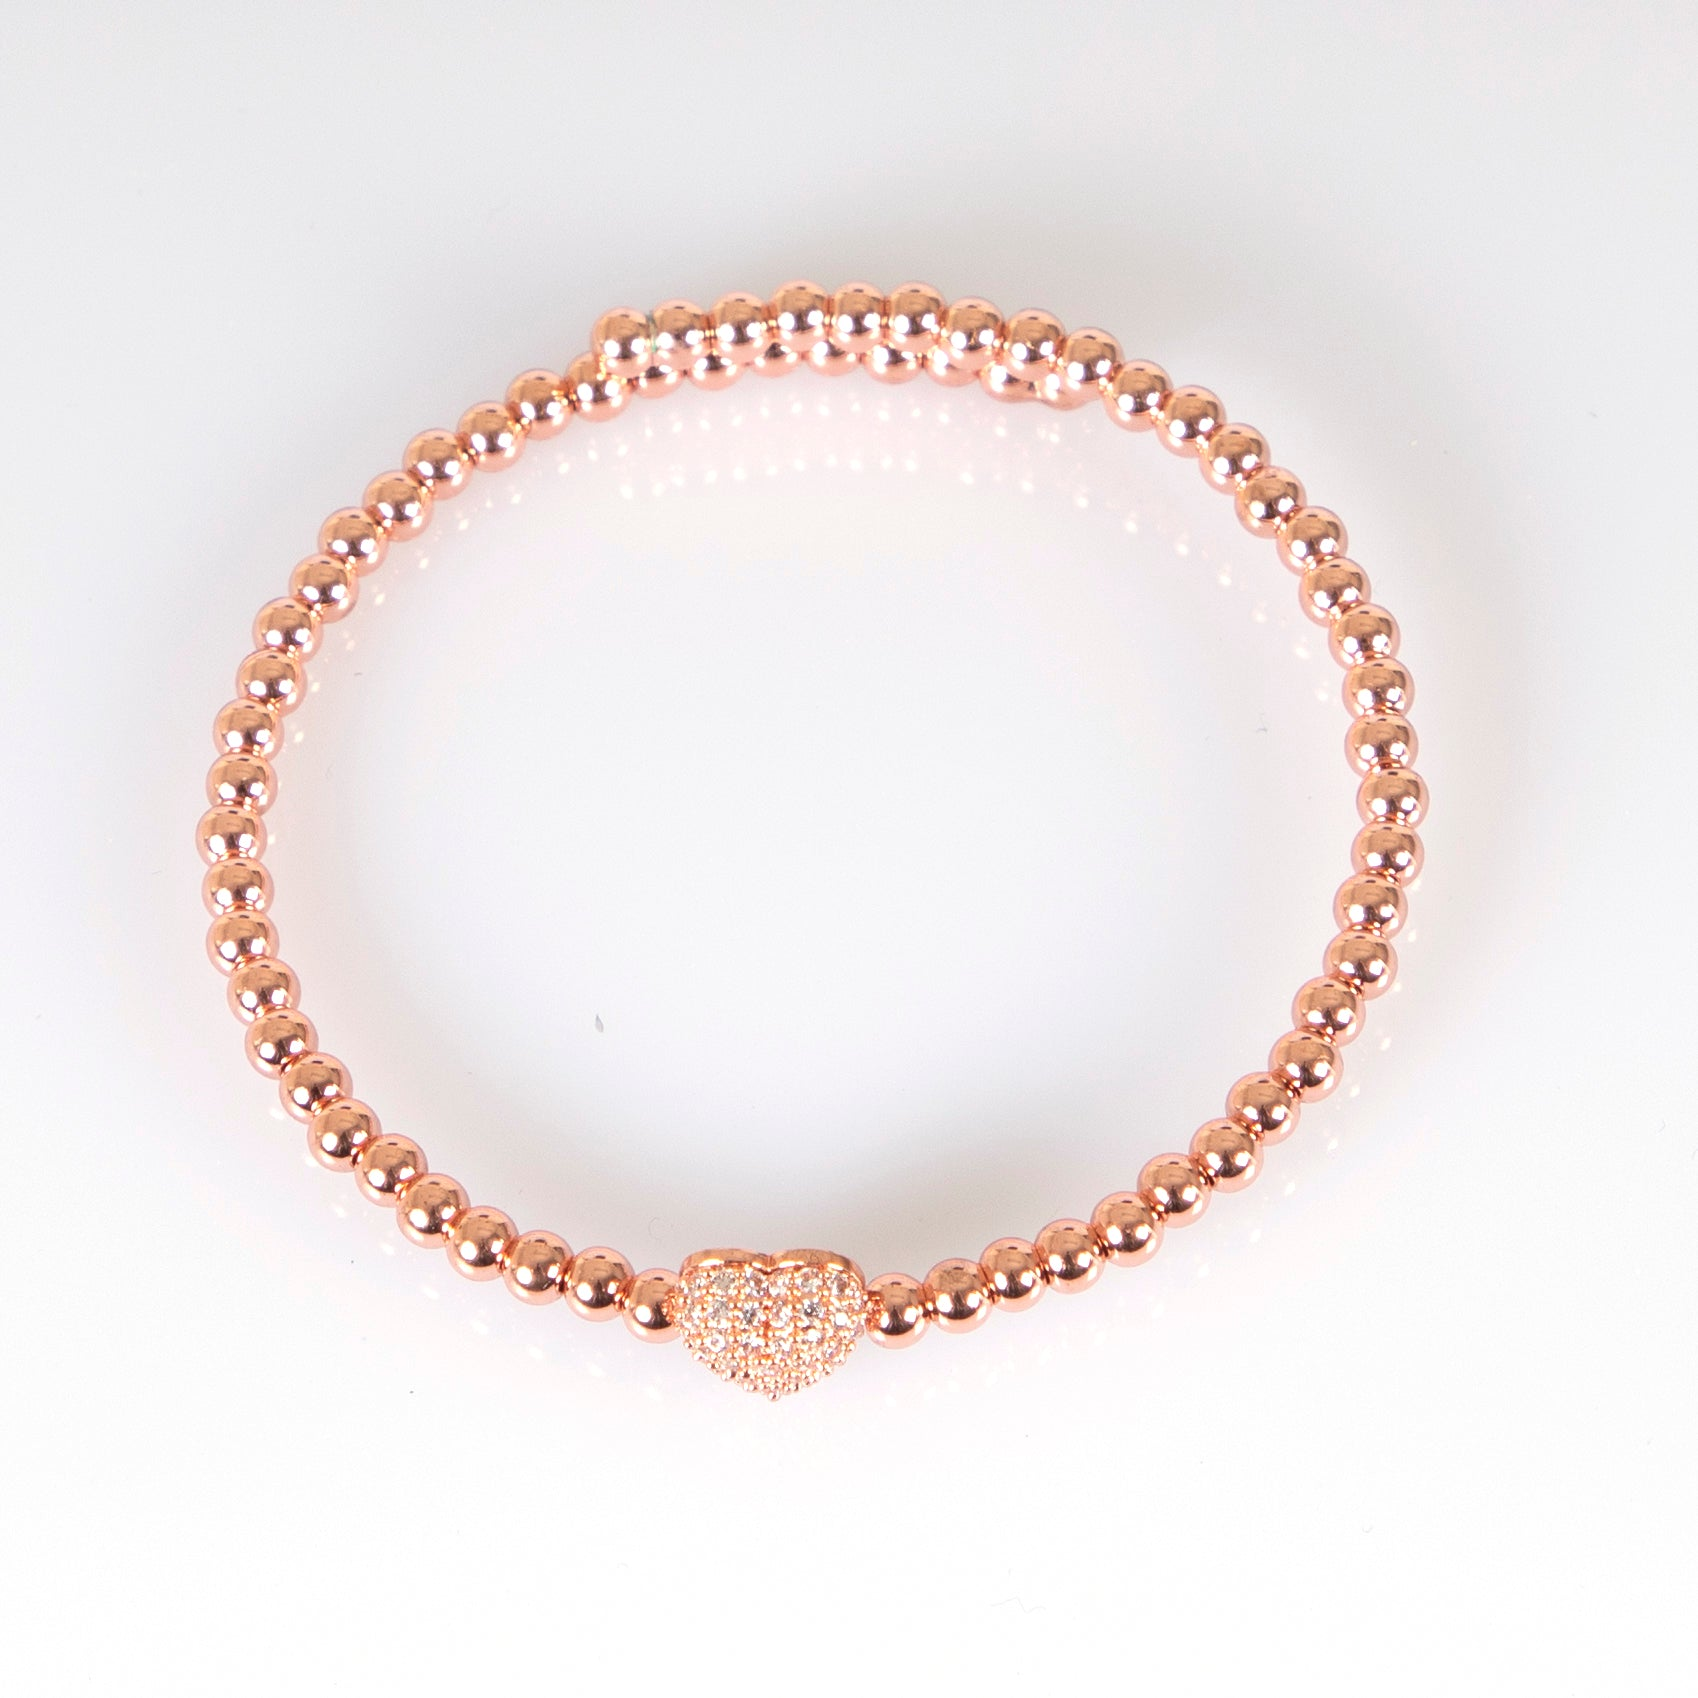 Olive and Tiger River Heart Open Cuff Bangle in Rose Gold